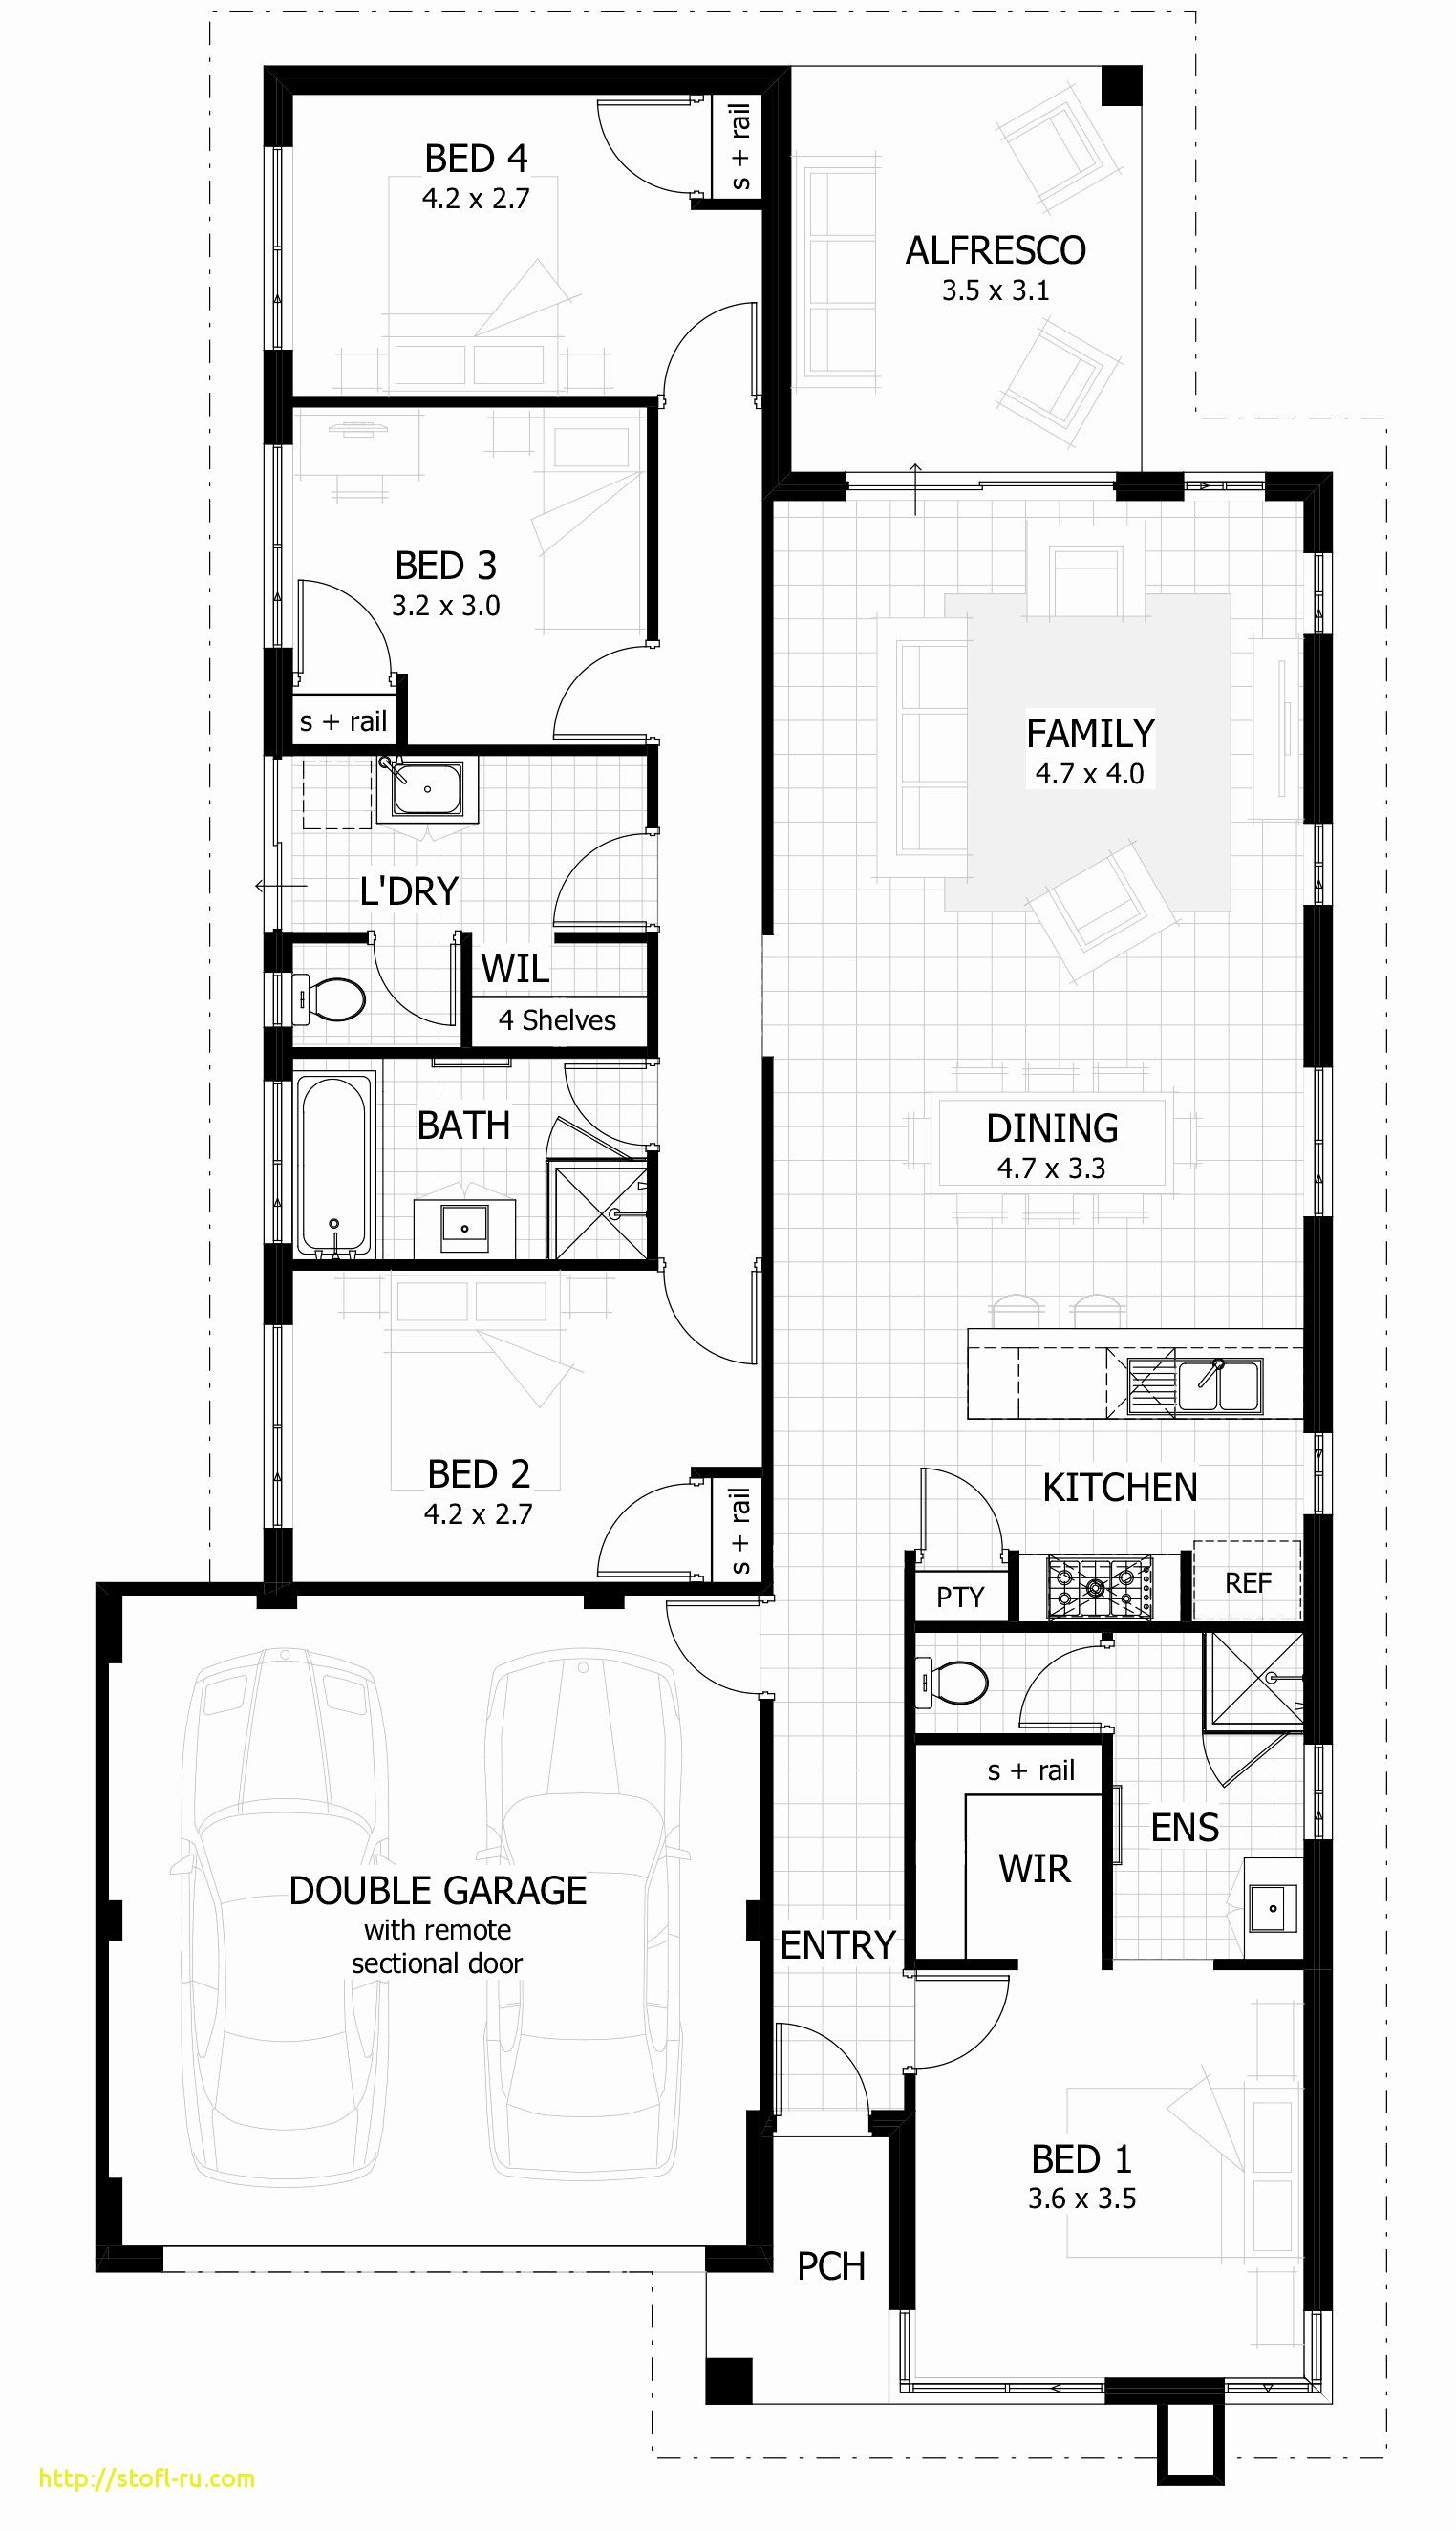 One Story House Plans for Narrow Lots - Modern Style House ... on 4 bedroom single story house plans, narrow home floor plans, one story historic house plans, one story southern house plans, one story ranch style house plans, contemporary narrow lot floor plans, 1.5 story house plans, one story european house plans, one story home design ideas, one story wooden house, small lot house plans, one story garage plans, one story cape cod house plans, best one story house plans, one story spanish house plans, one story contemporary house plans, one story mediterranean house plans, open shotgun style house plans, one story simple house plans, one story small house plans,